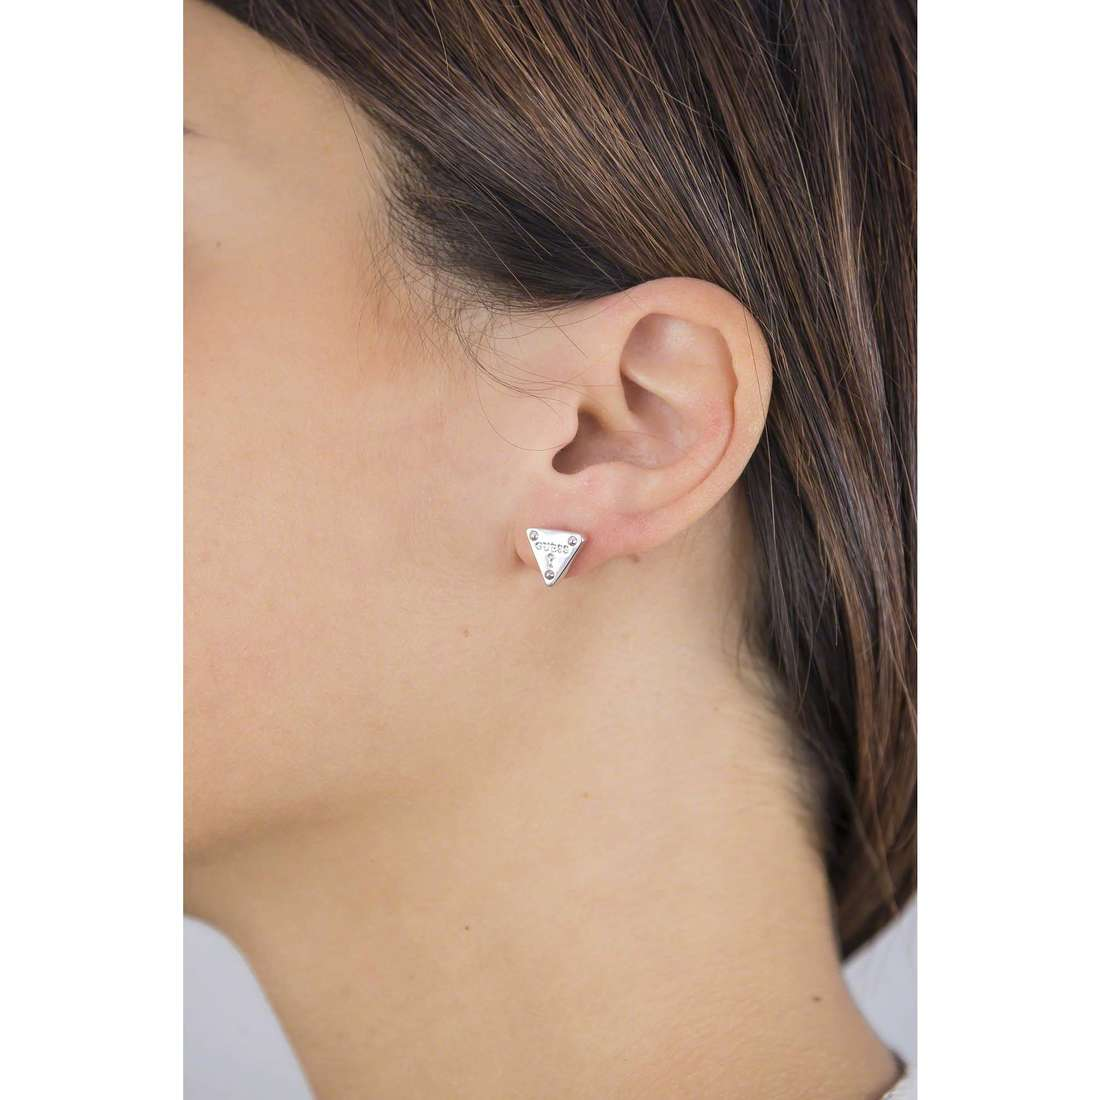 Guess boucles d'oreille femme UBE61086 indosso